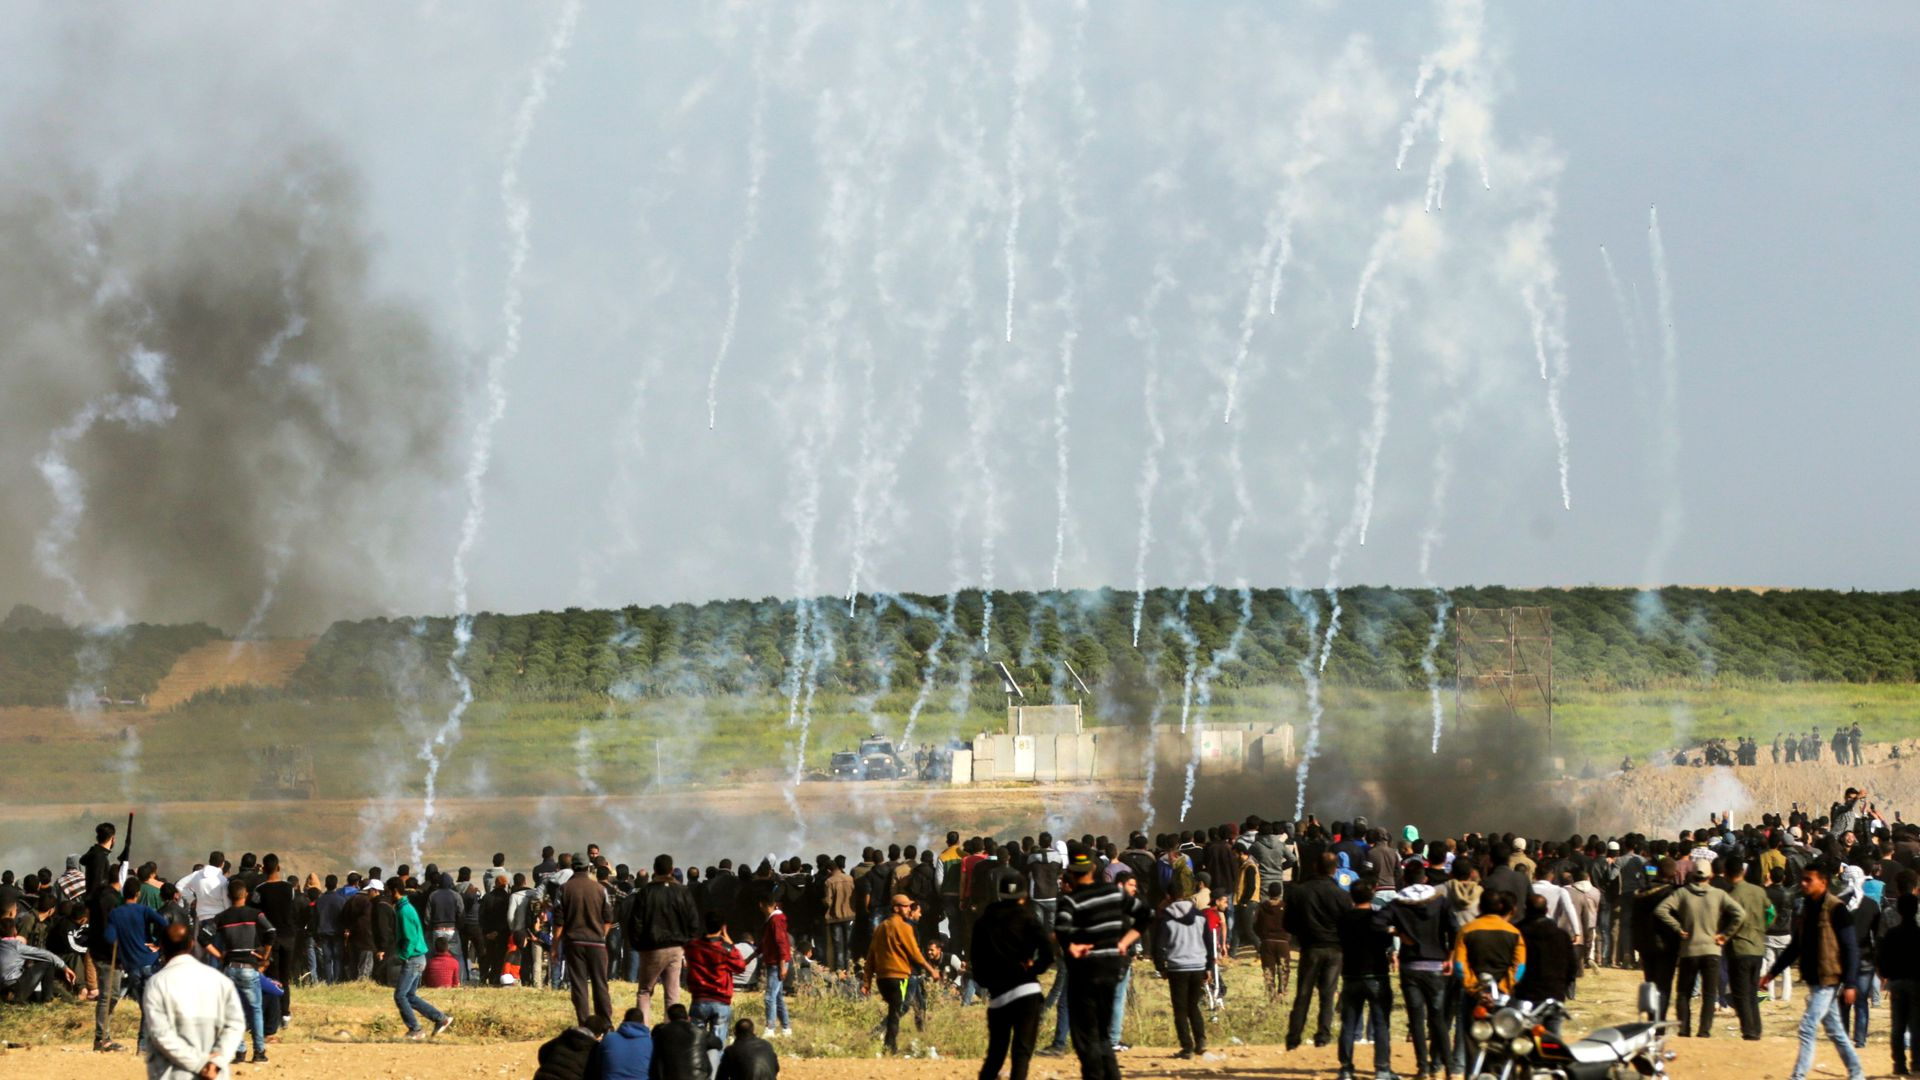 Palestinian protestors run for cover from tear gas fired by Israeli security forces during clashes following a demonstration commemorating Land Day, near the border with Israel